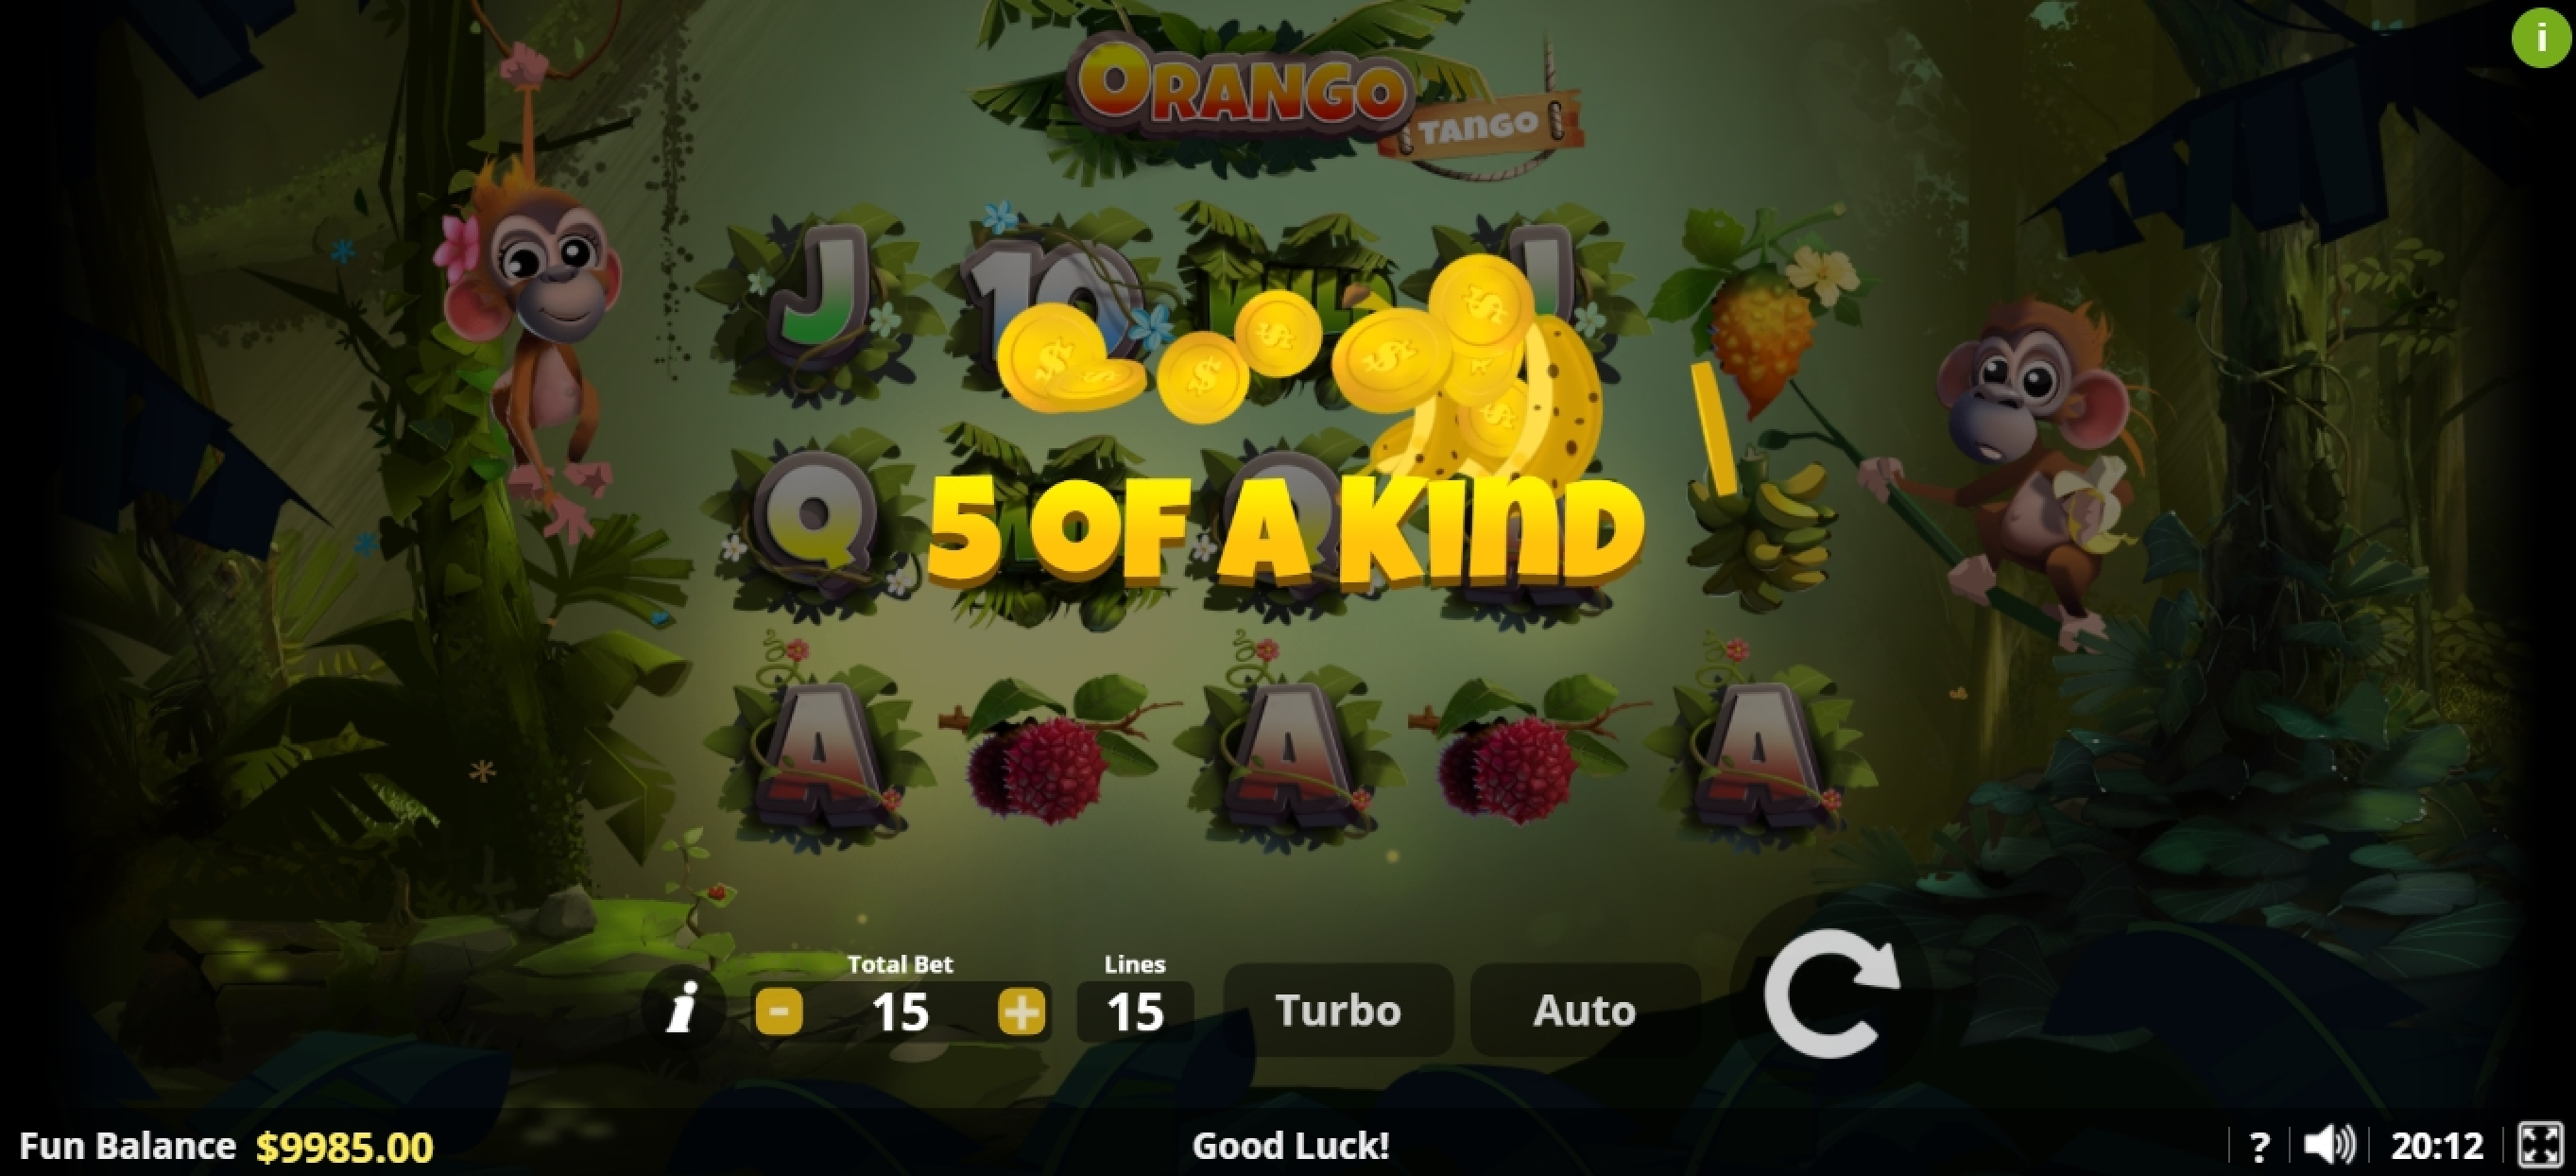 Win Money in Orango Tango Free Slot Game by Lady Luck Games